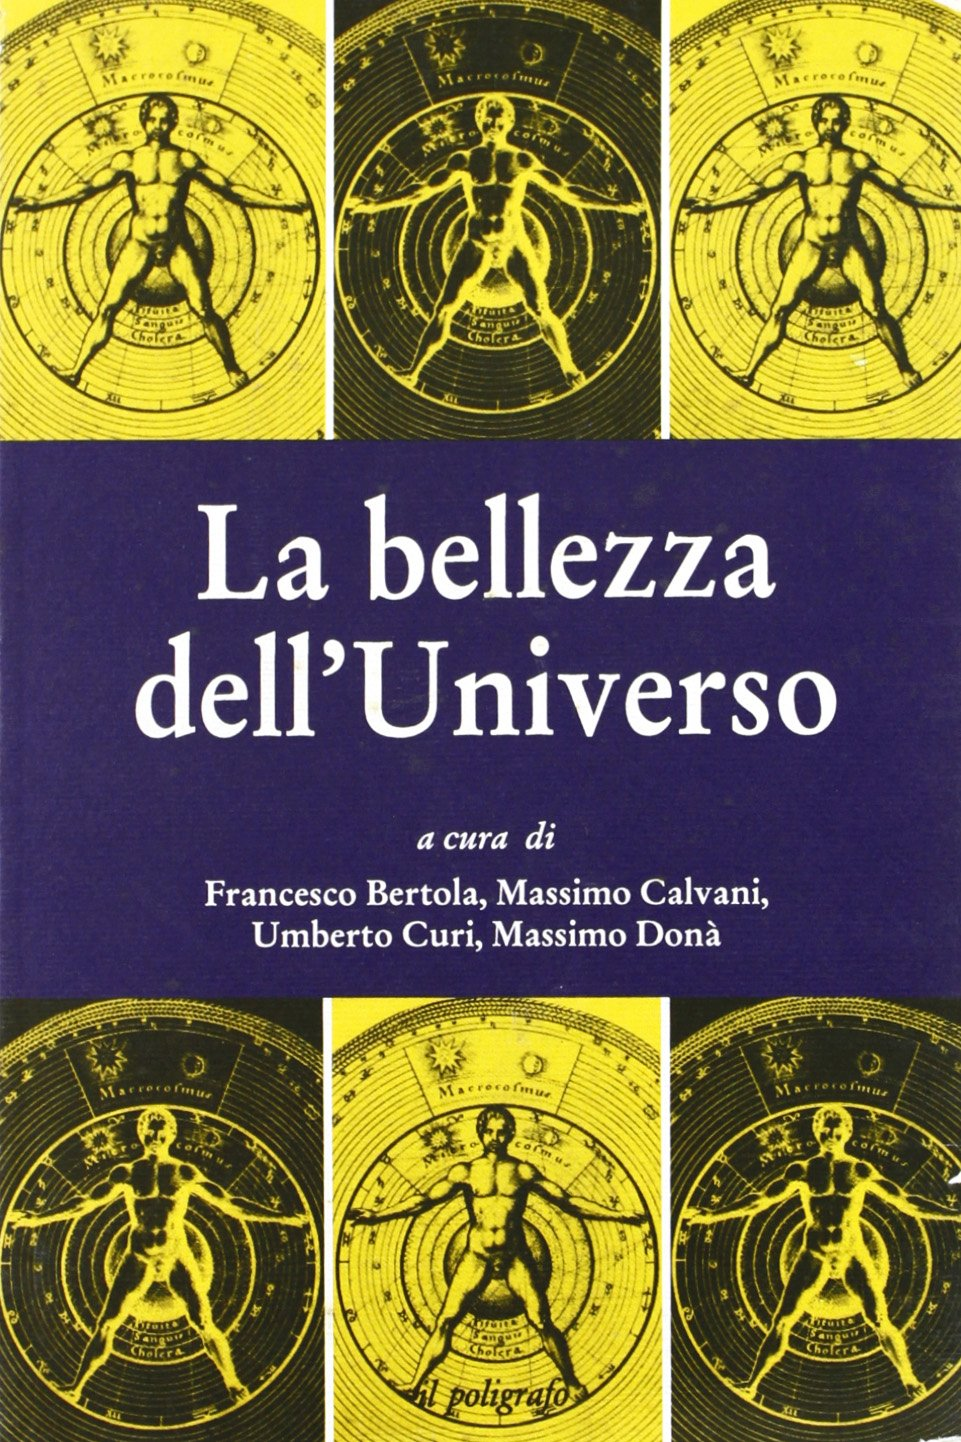 La bellezza dell'universo